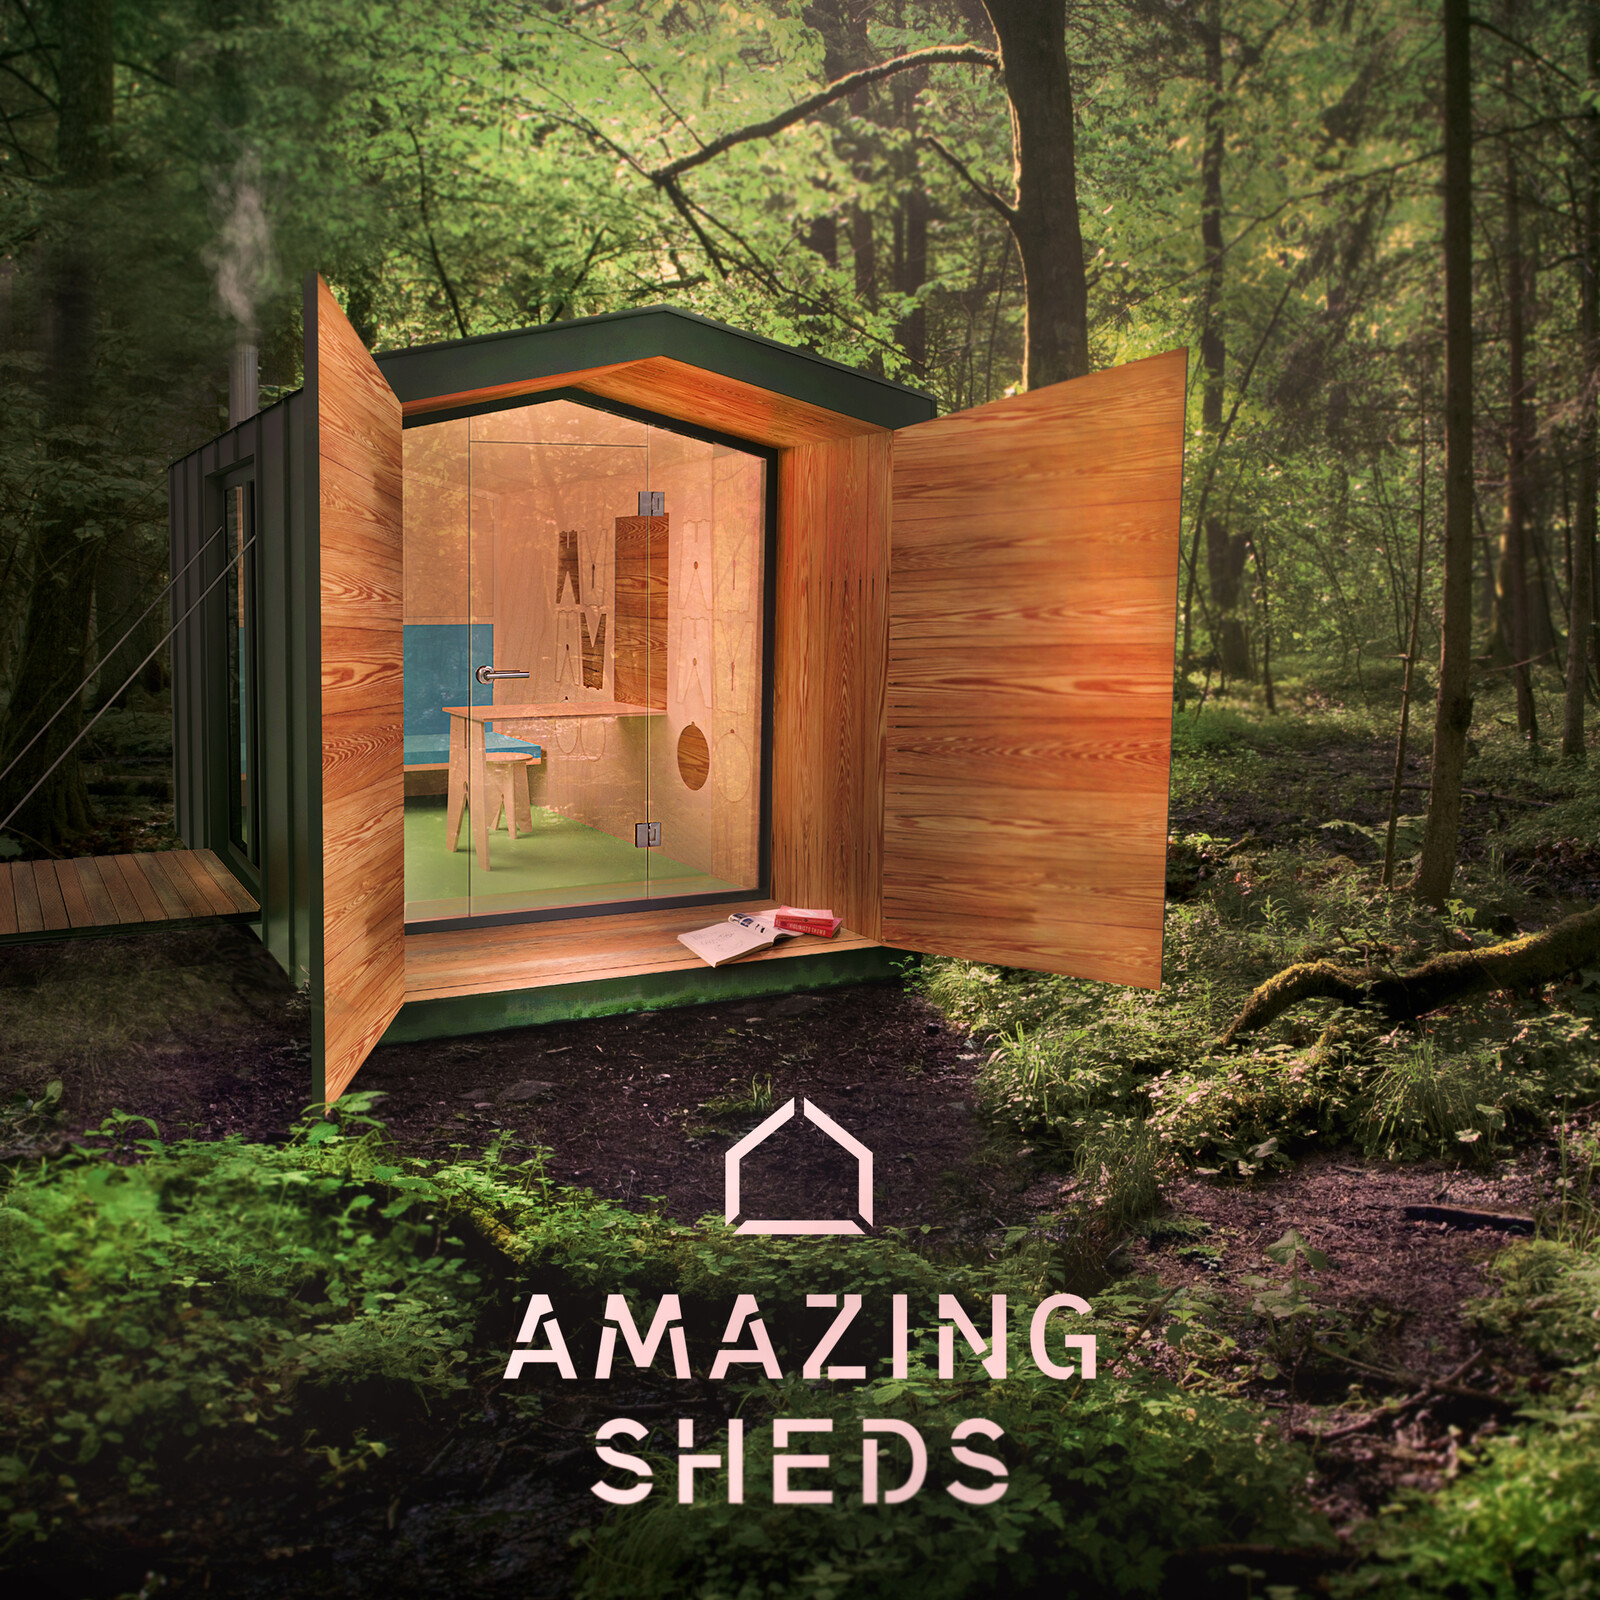 Amazing Sheds - Advertising, Compositing, Arch-Rendering